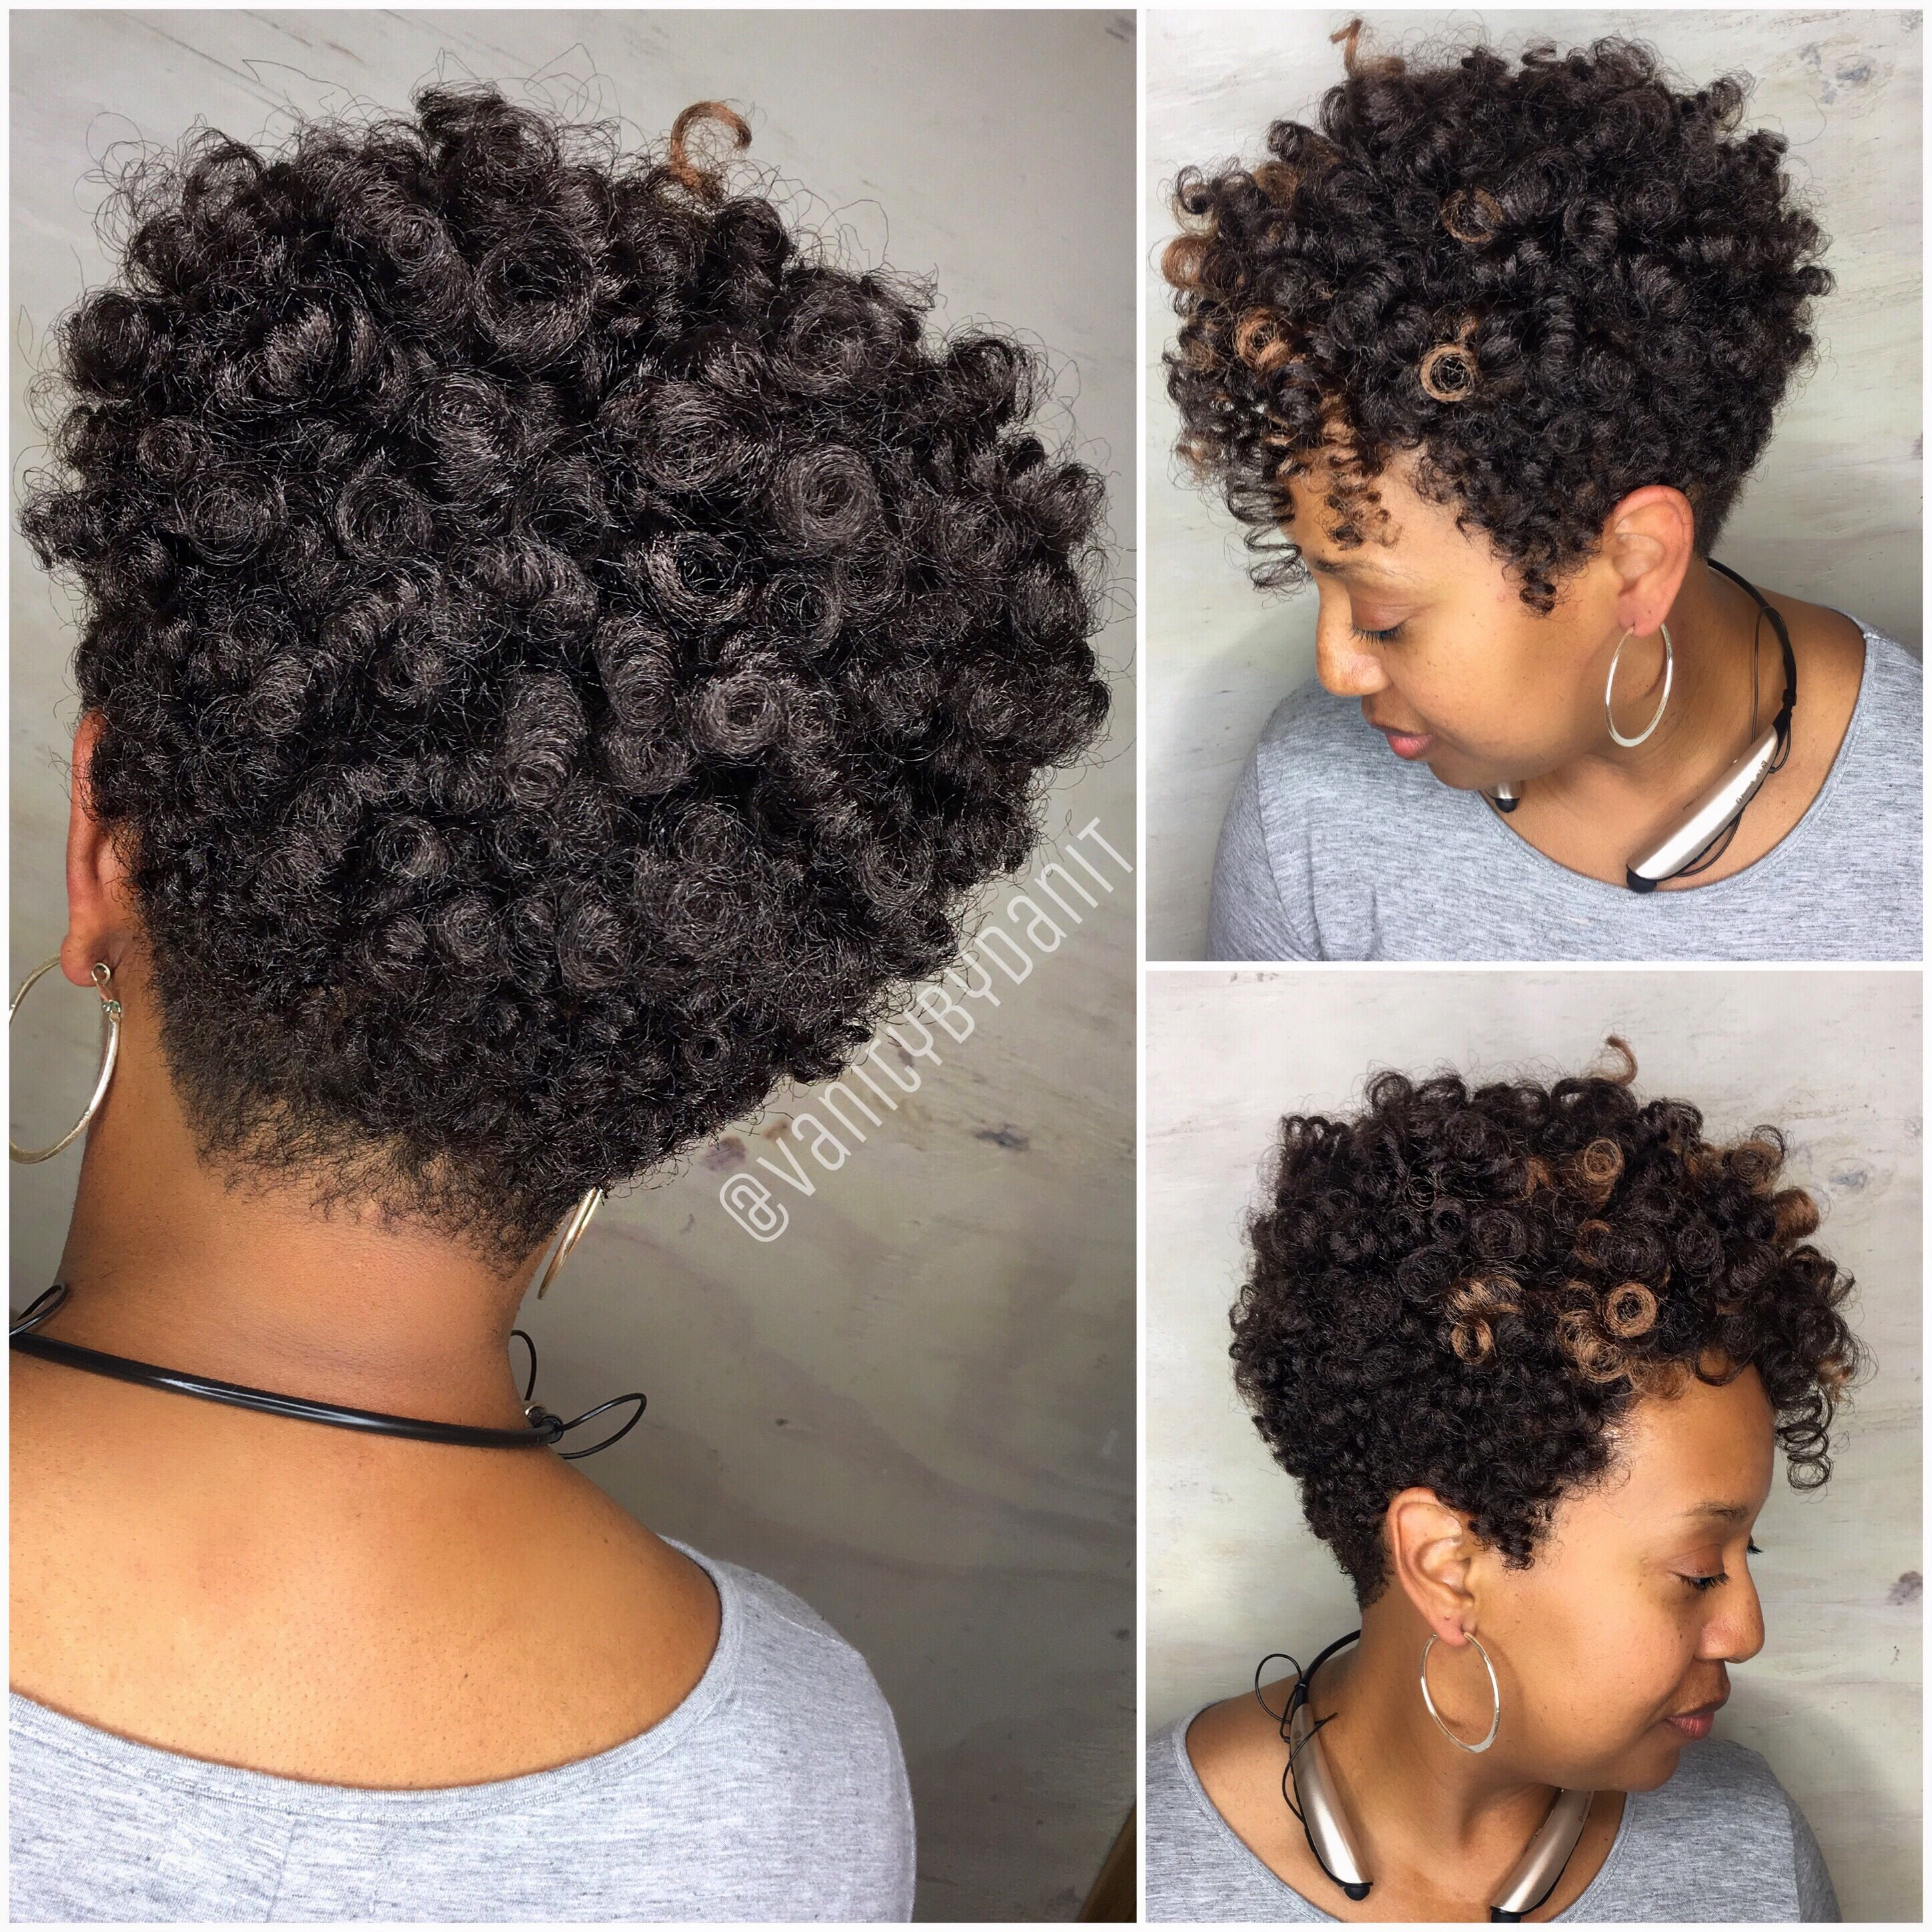 Crochet braids tapered cut by vanitybydanit using curlkalon Carrie